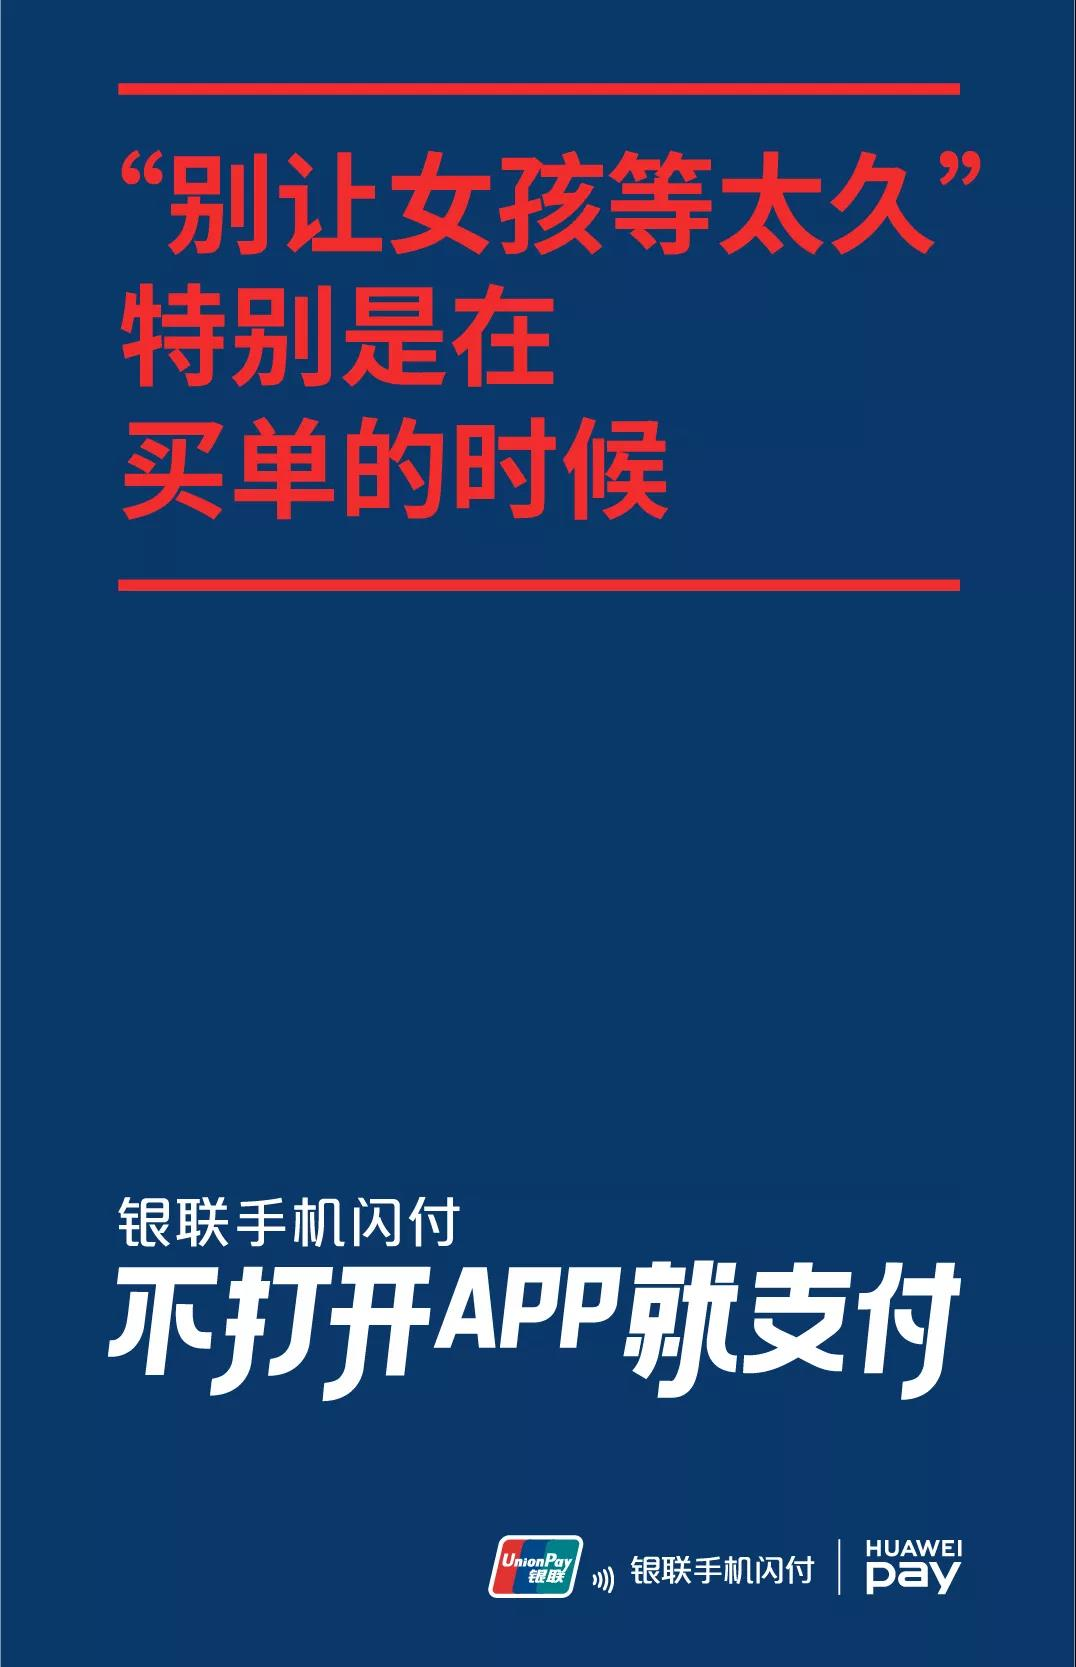 China UnionPay-Huawei Pay-1